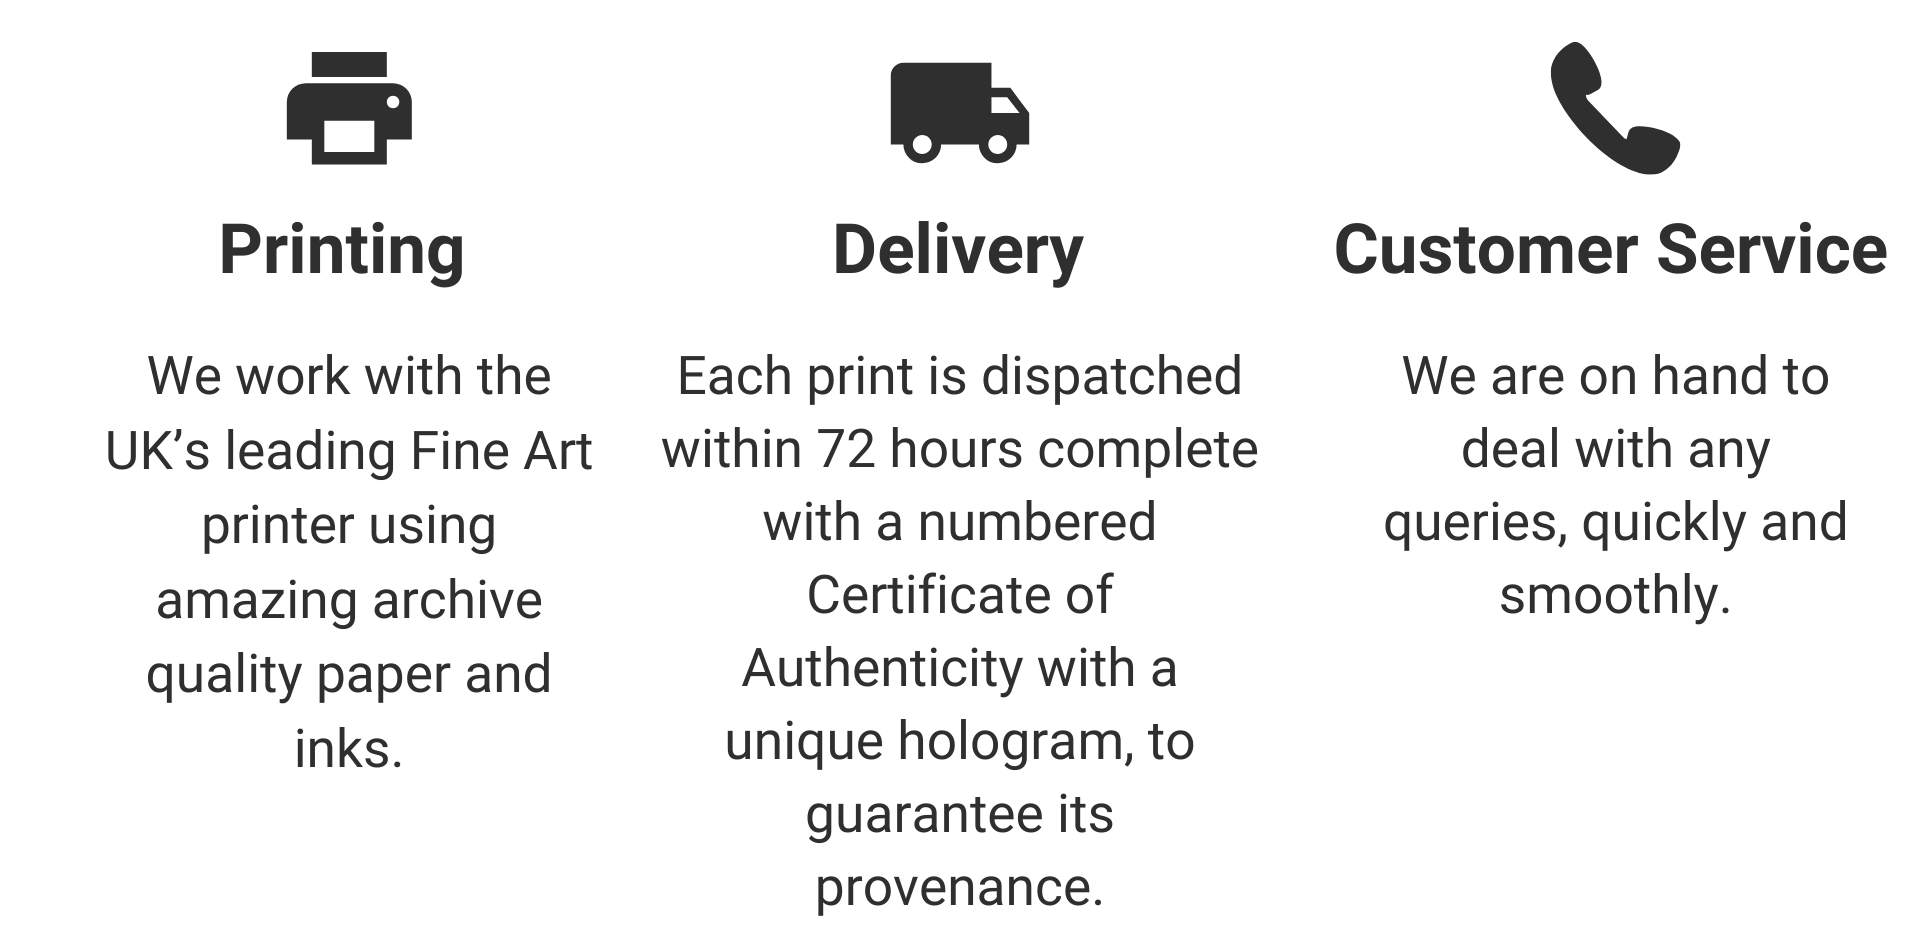 Printing 	Delivery	Customer Service  We work with the UK's leading Fine Art printer using amazing archive quality paper and inks. 	Each print is dispatched within 72 hours complete with a numbered Certificate of Authenticity with a unique hologram, to guarantee its provenance. 	We are on hand to deal with any queries, quickly and smoothly.